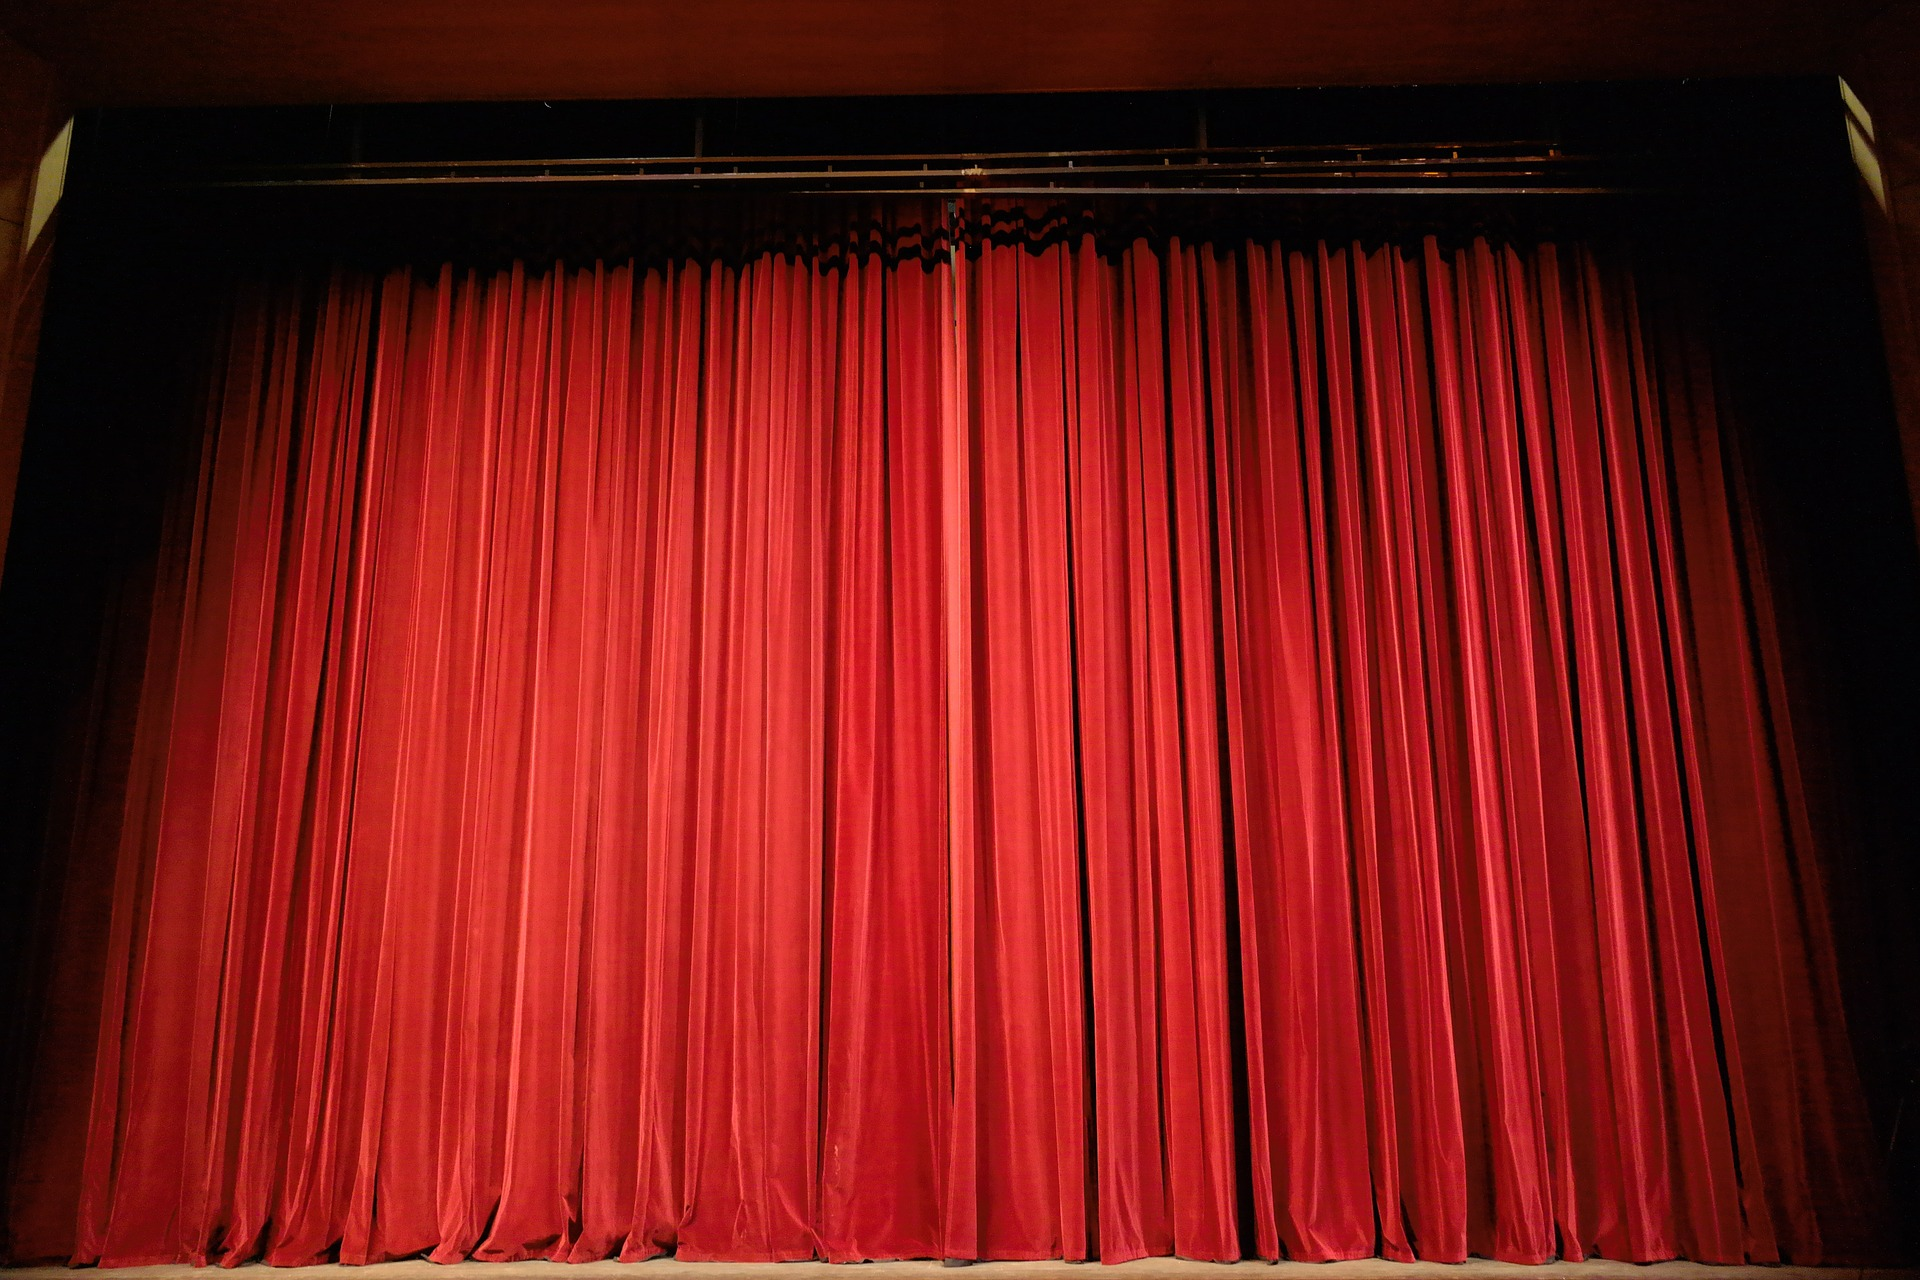 Opening Celebration: Curtain on a Stage